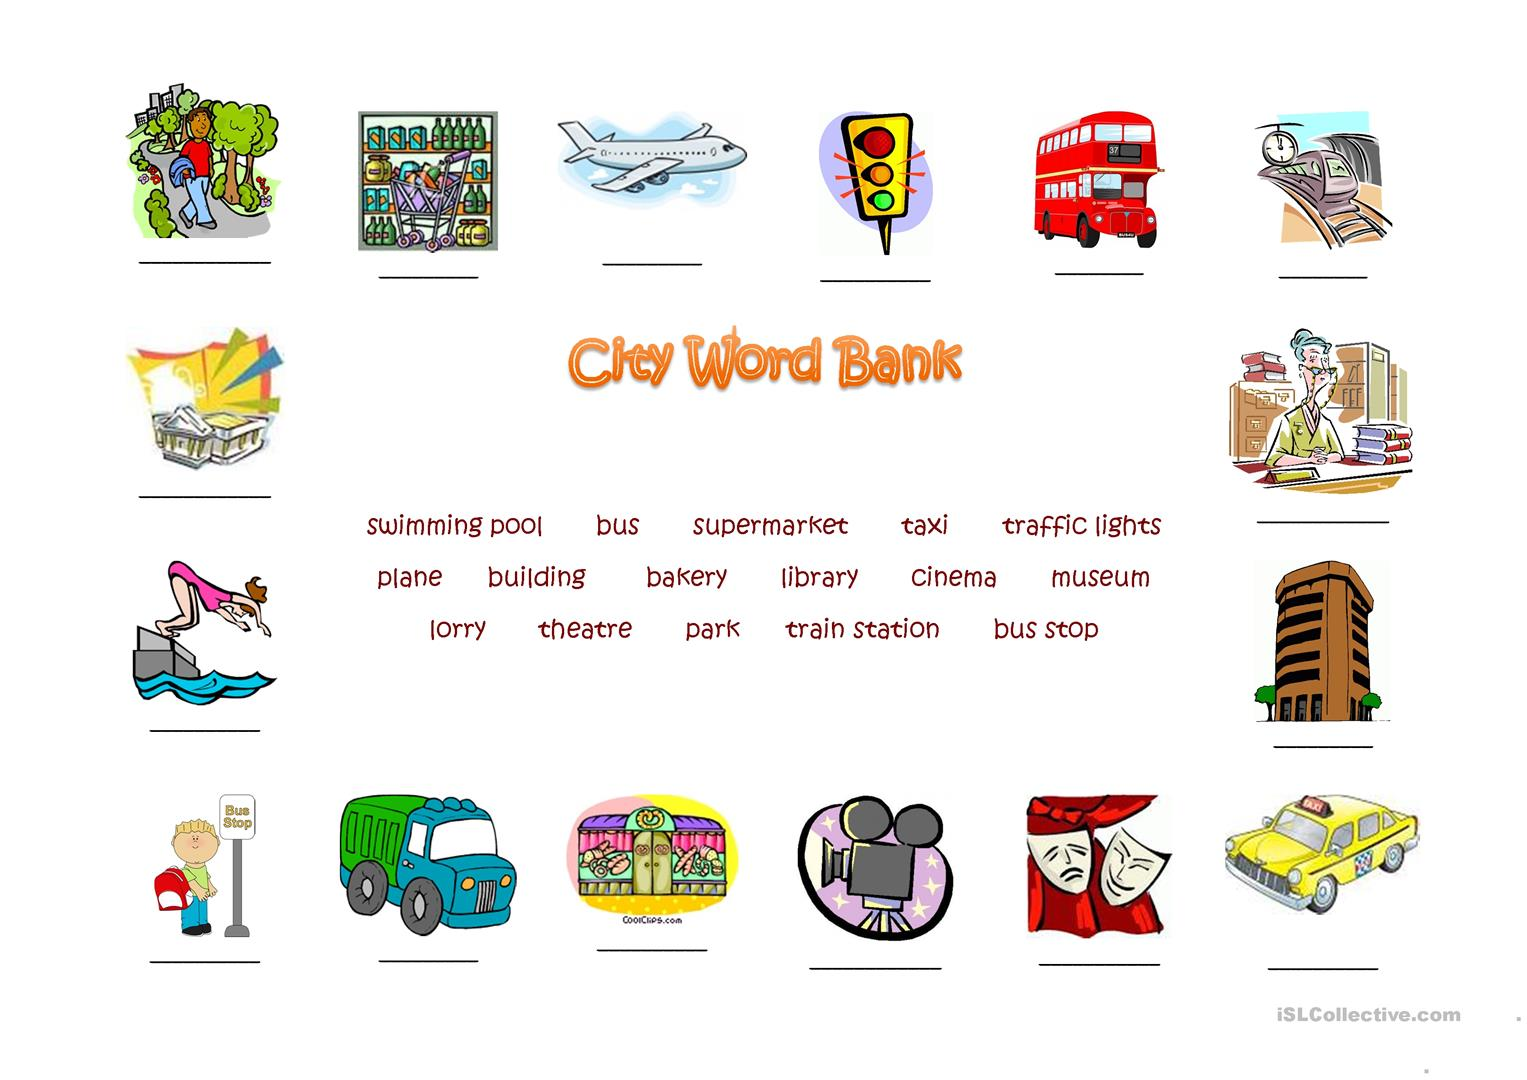 City Word Bank